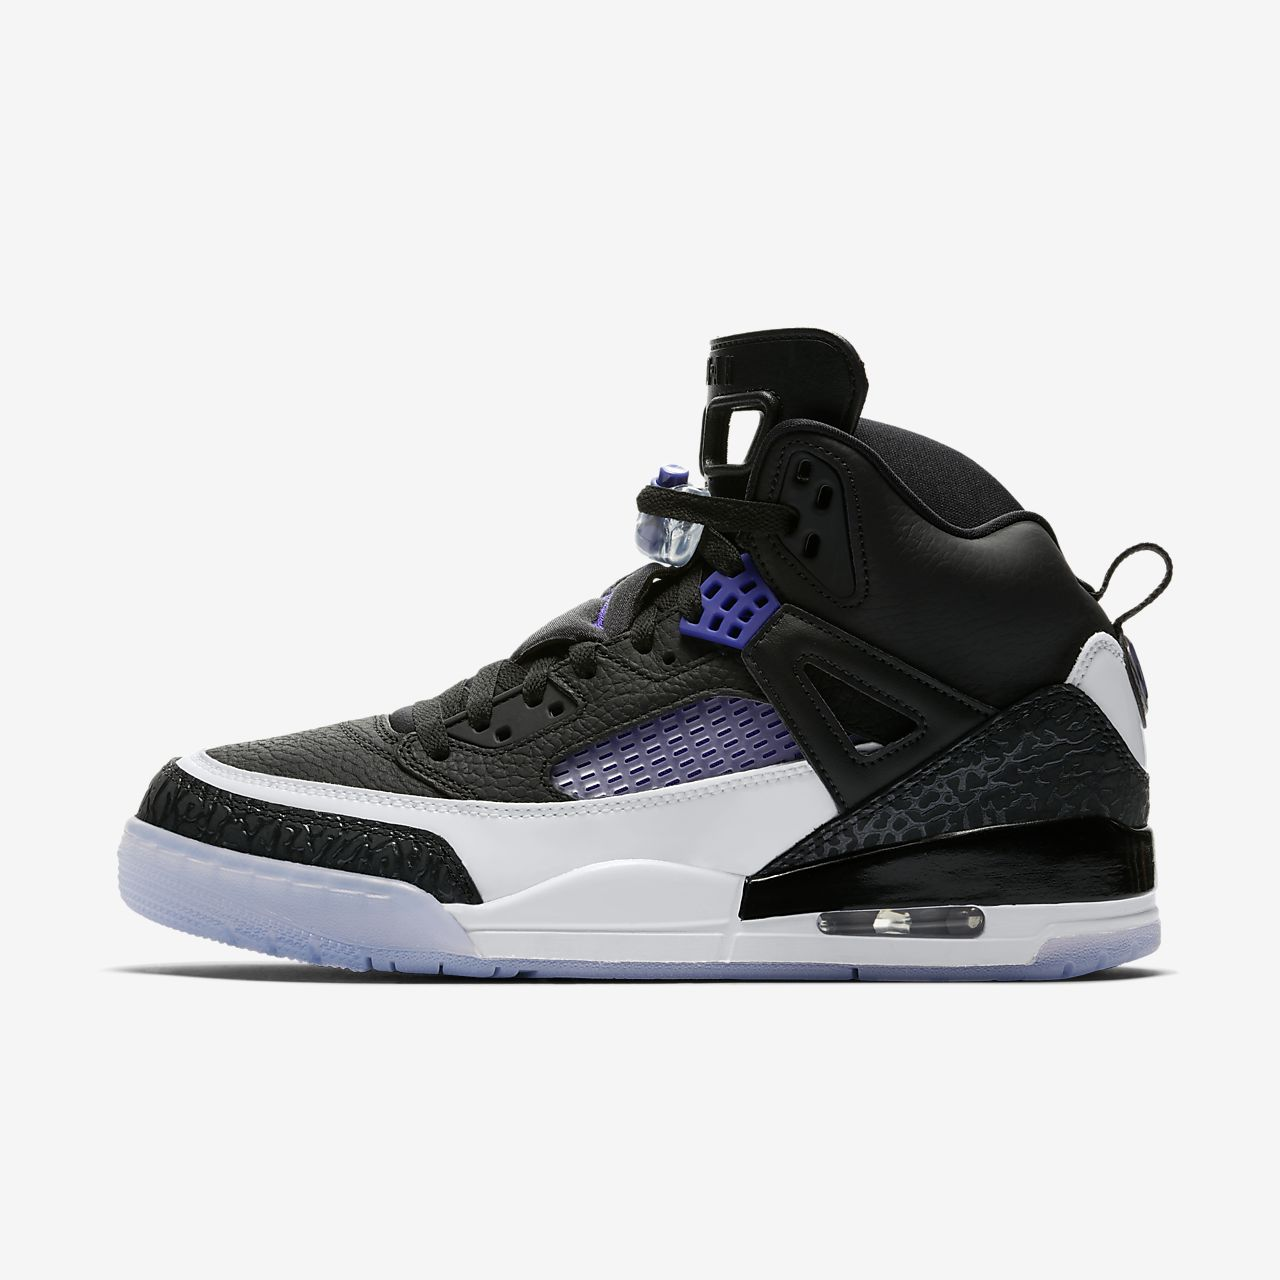 6b2f1cc41b7 Low Resolution Jordan Spizike Men s Shoe Jordan Spizike Men s Shoe